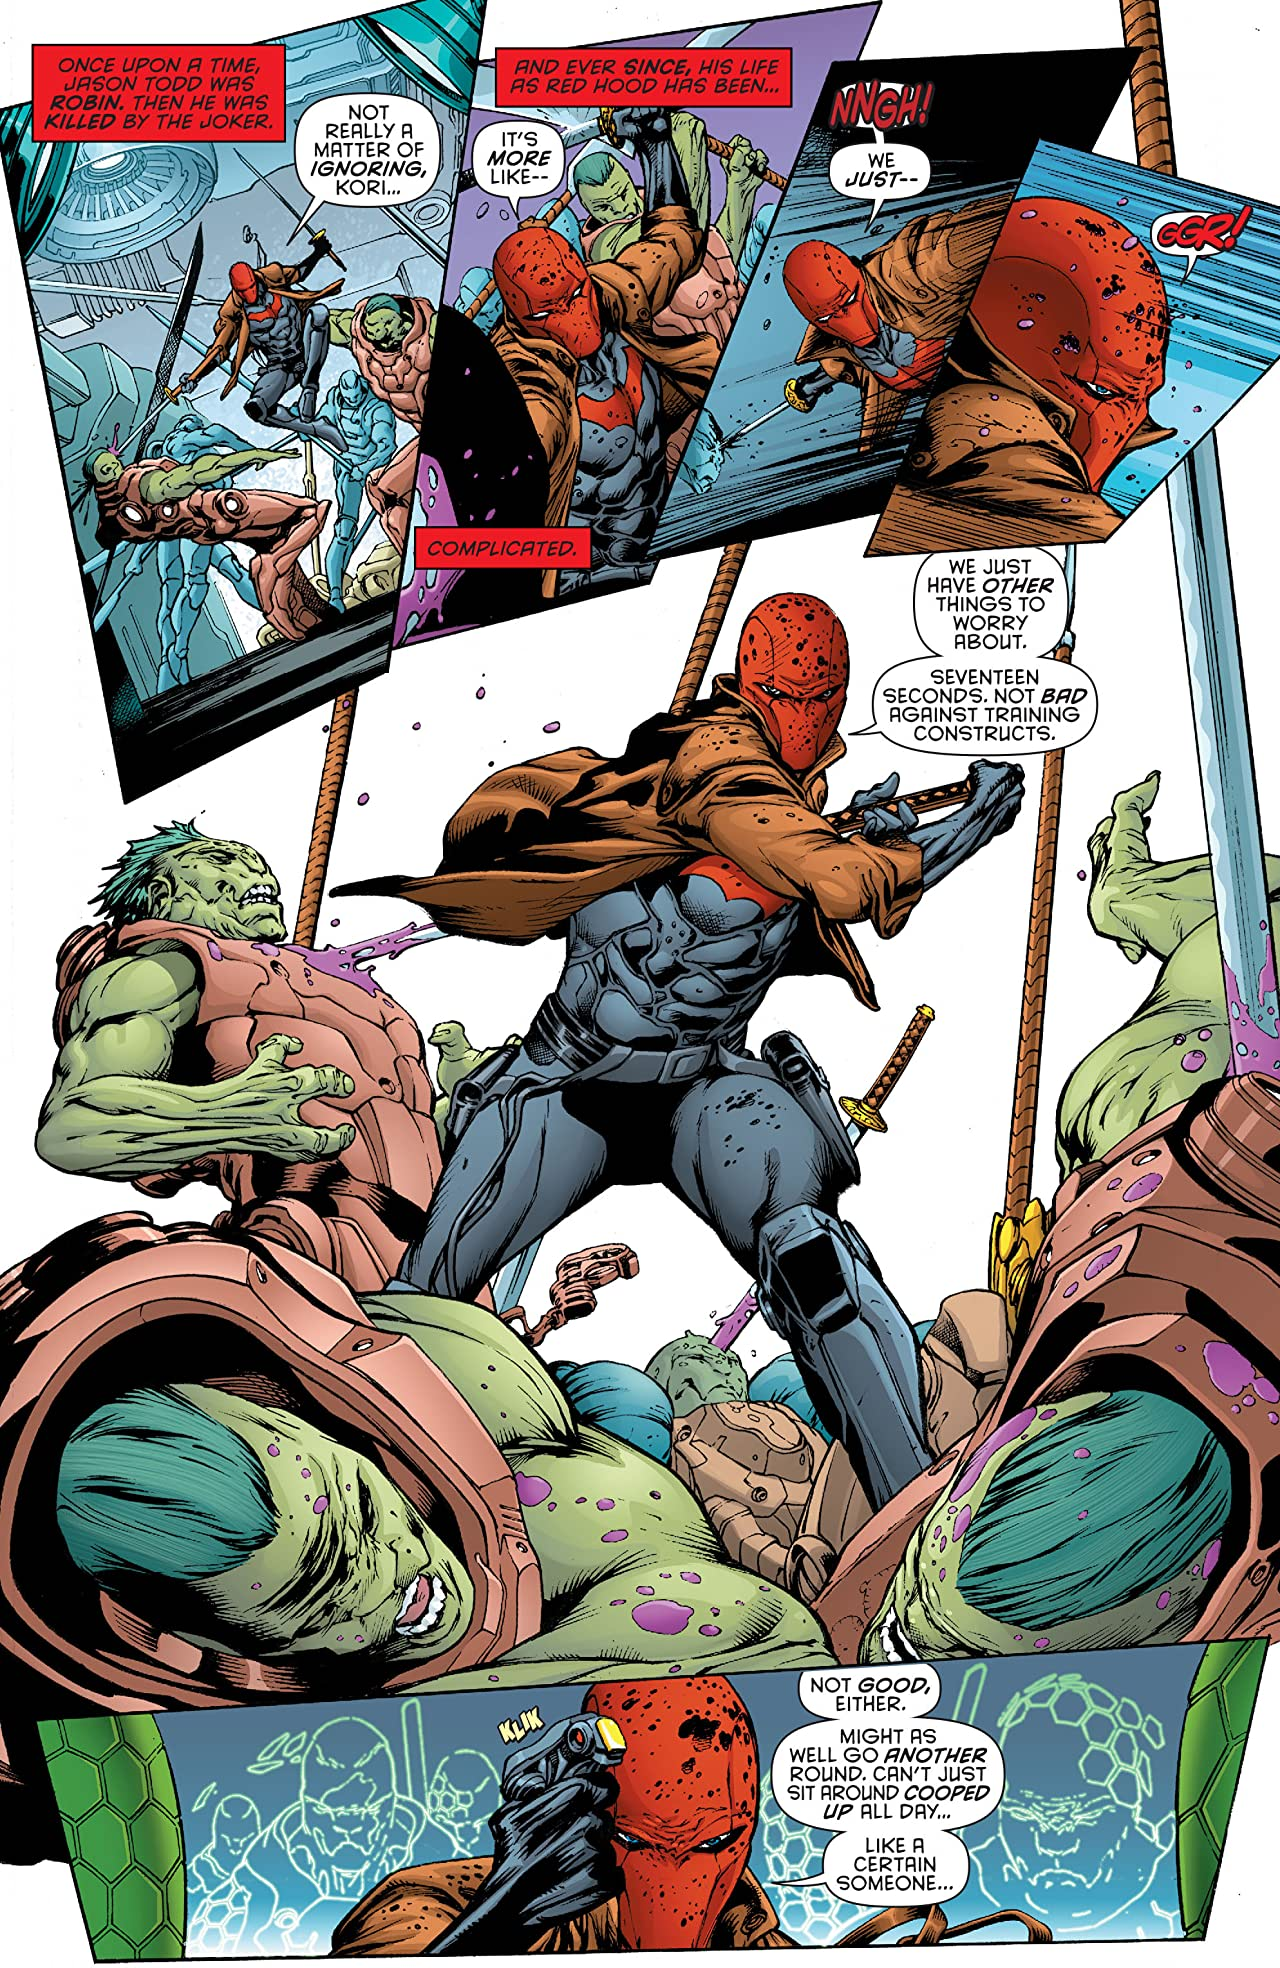 Red Hood and the Outlaws (2011-2015) #29